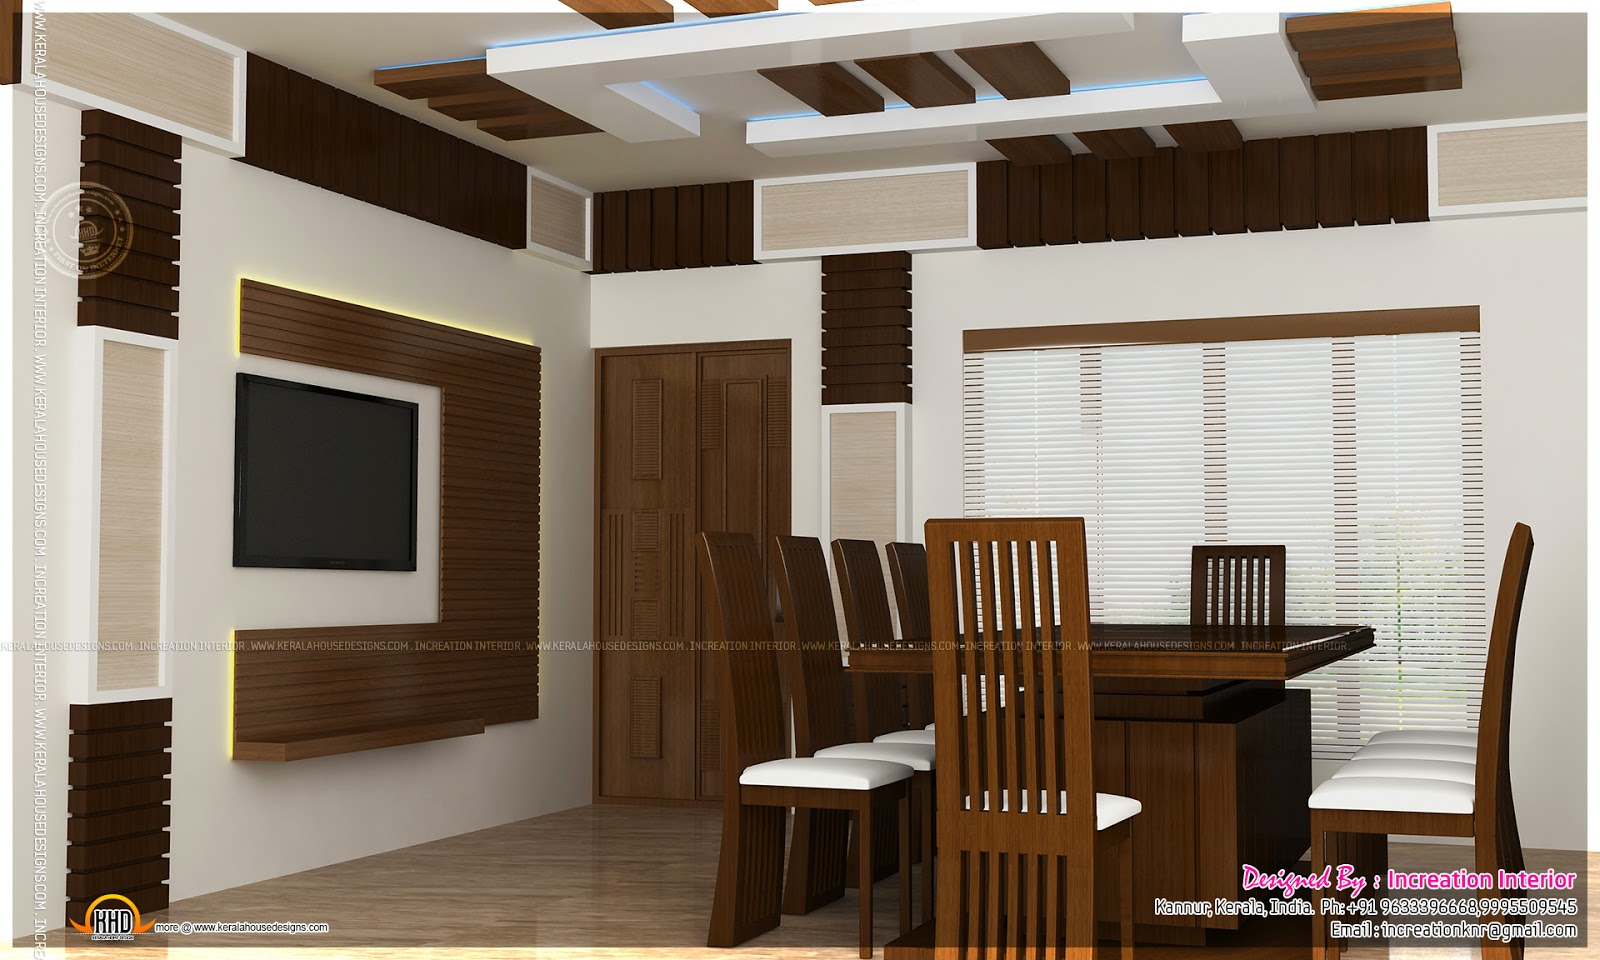 Interior design ideas by increation interior kerala for Interior designs photo